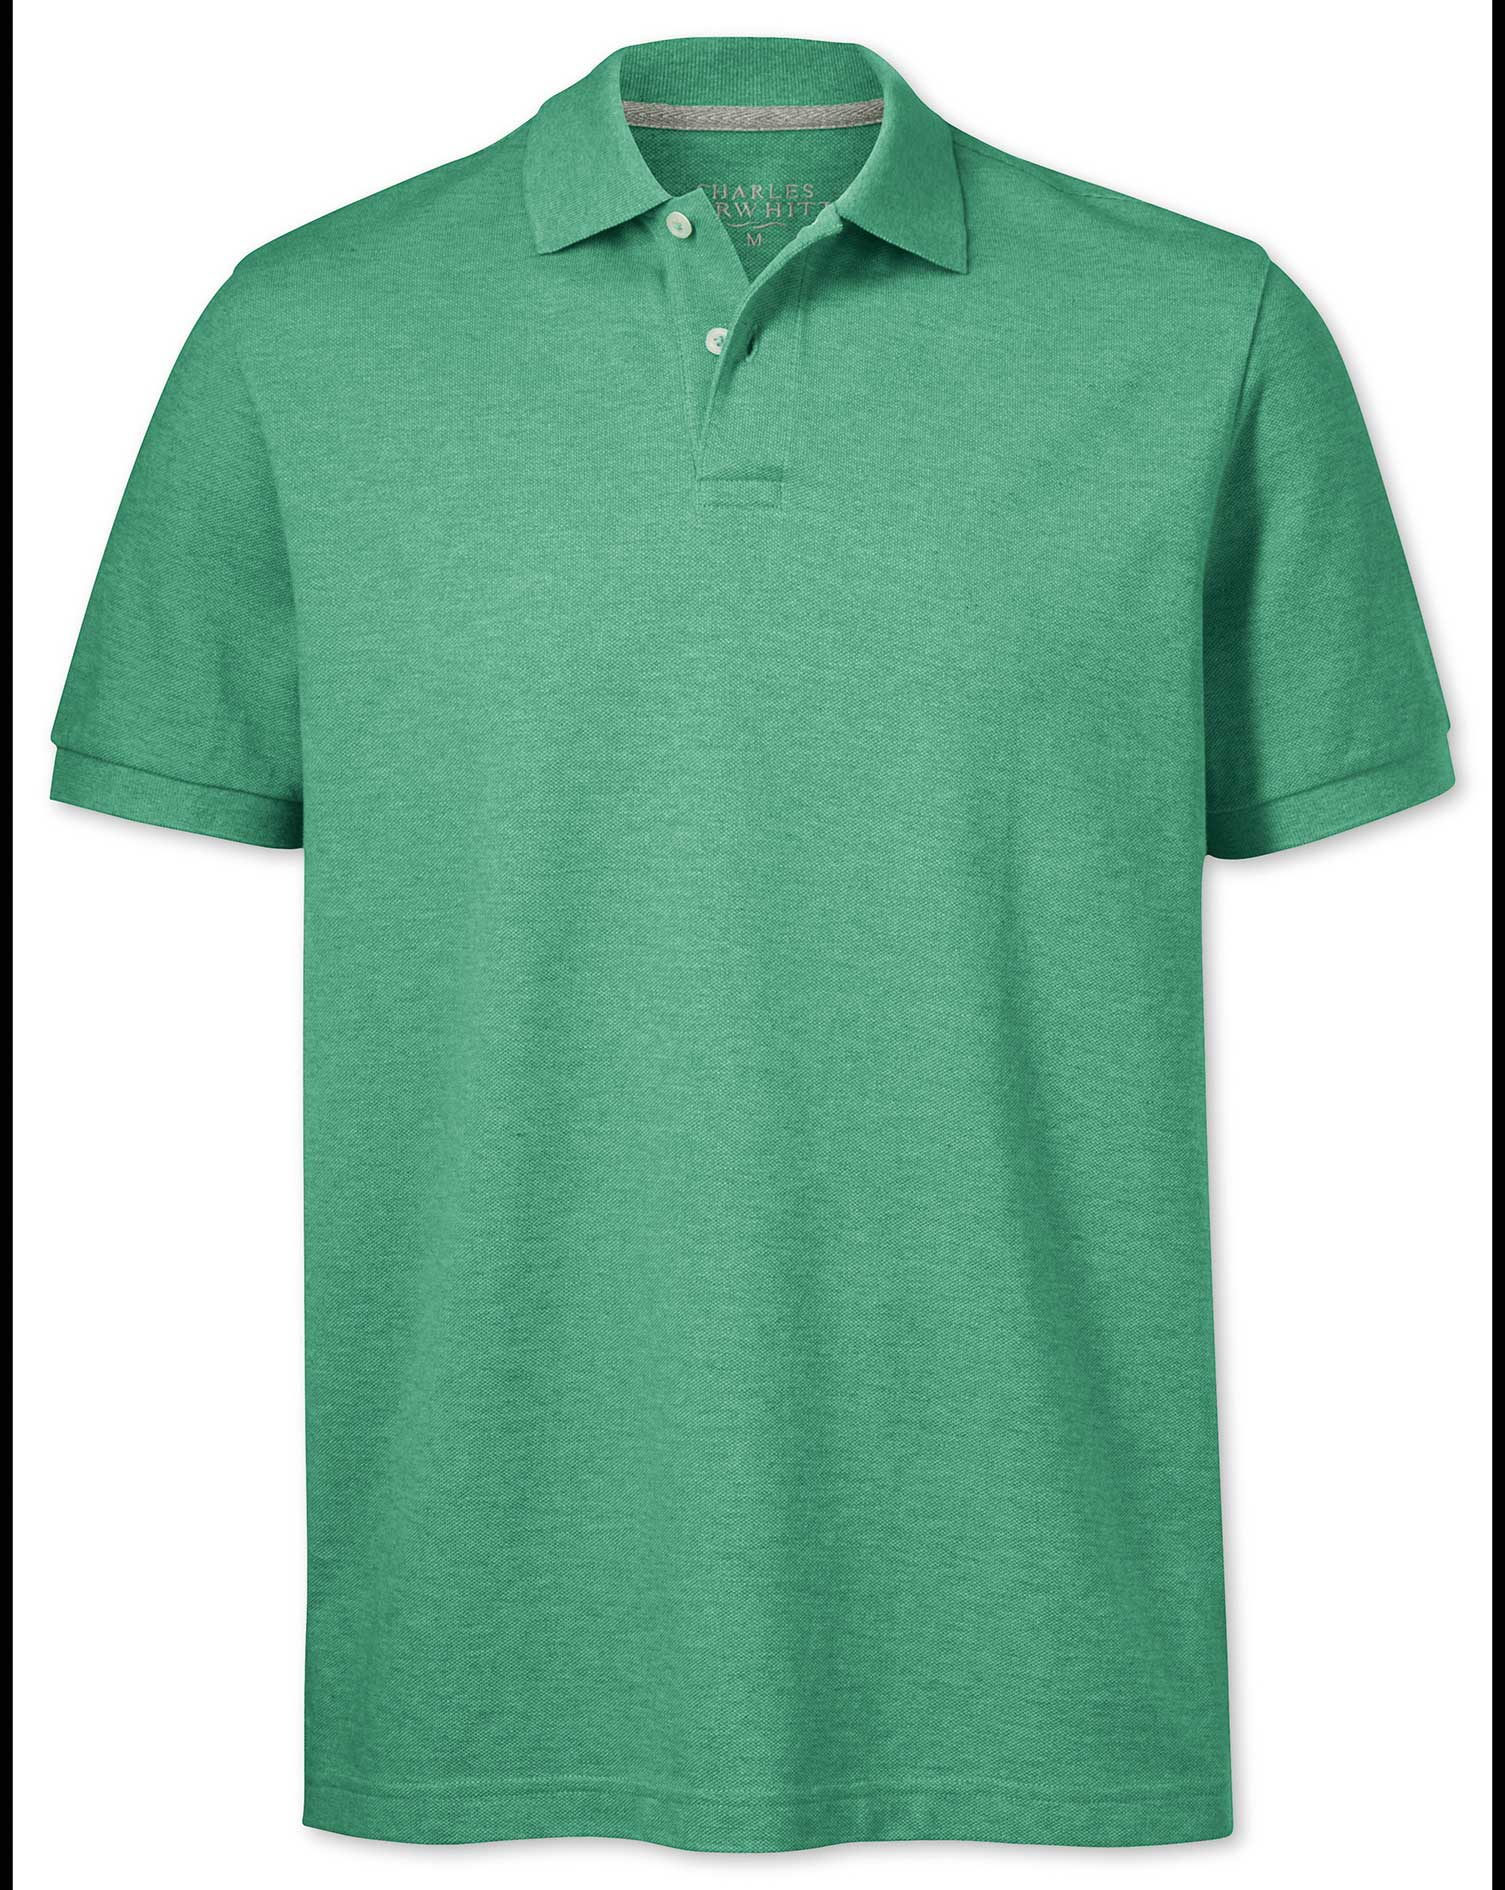 Light Green Pique Cotton Polo Size XS by Charles Tyrwhitt